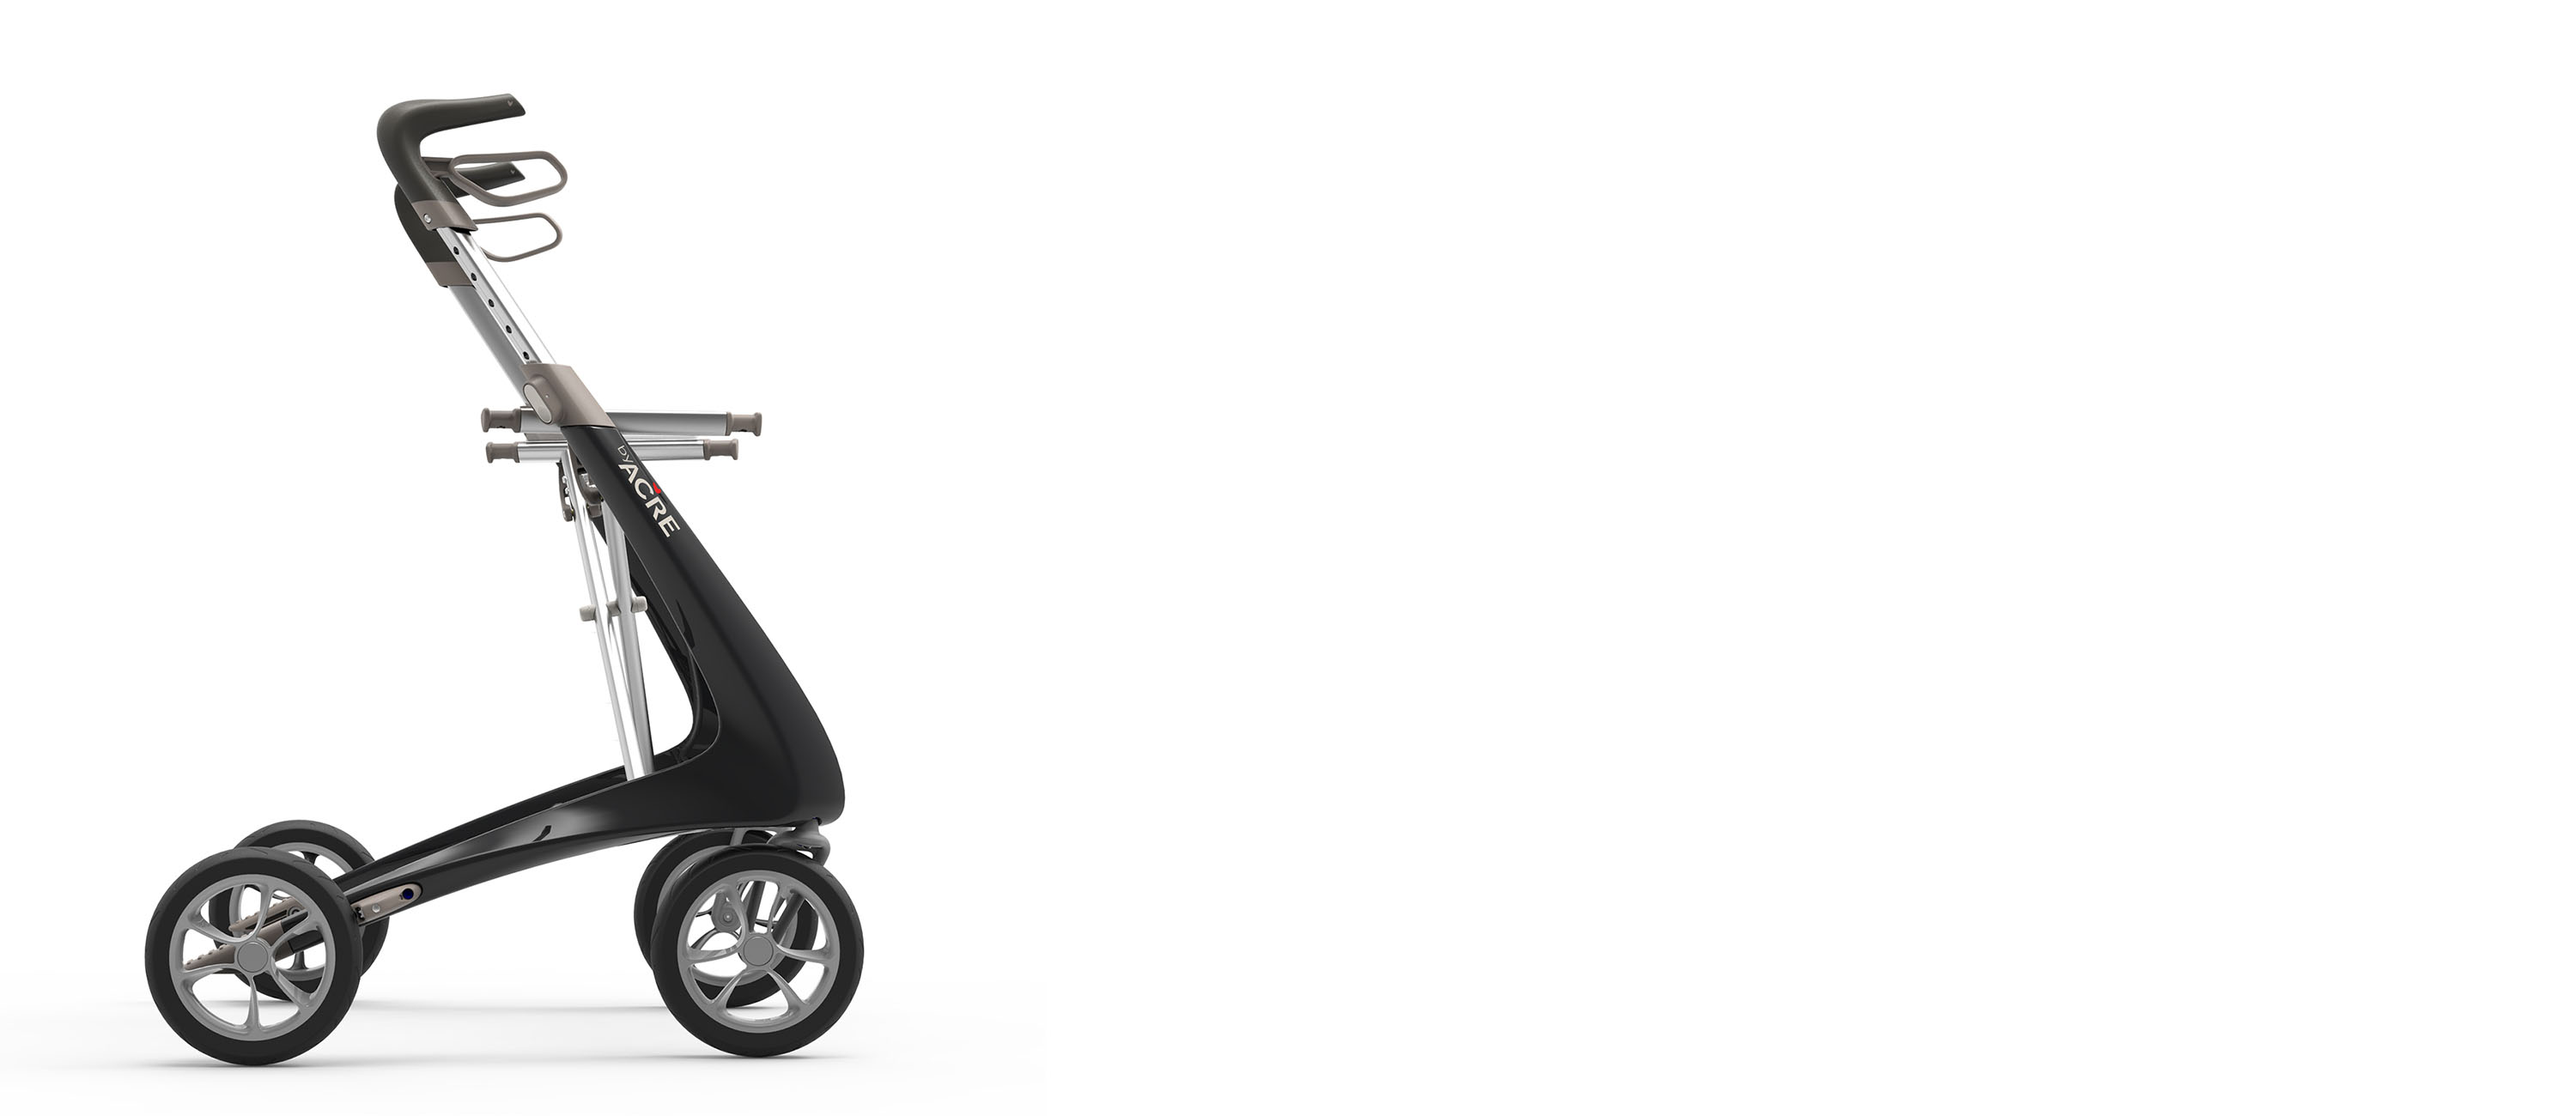 Black Carbon Ultralight Rollator byACRE - seen in profile